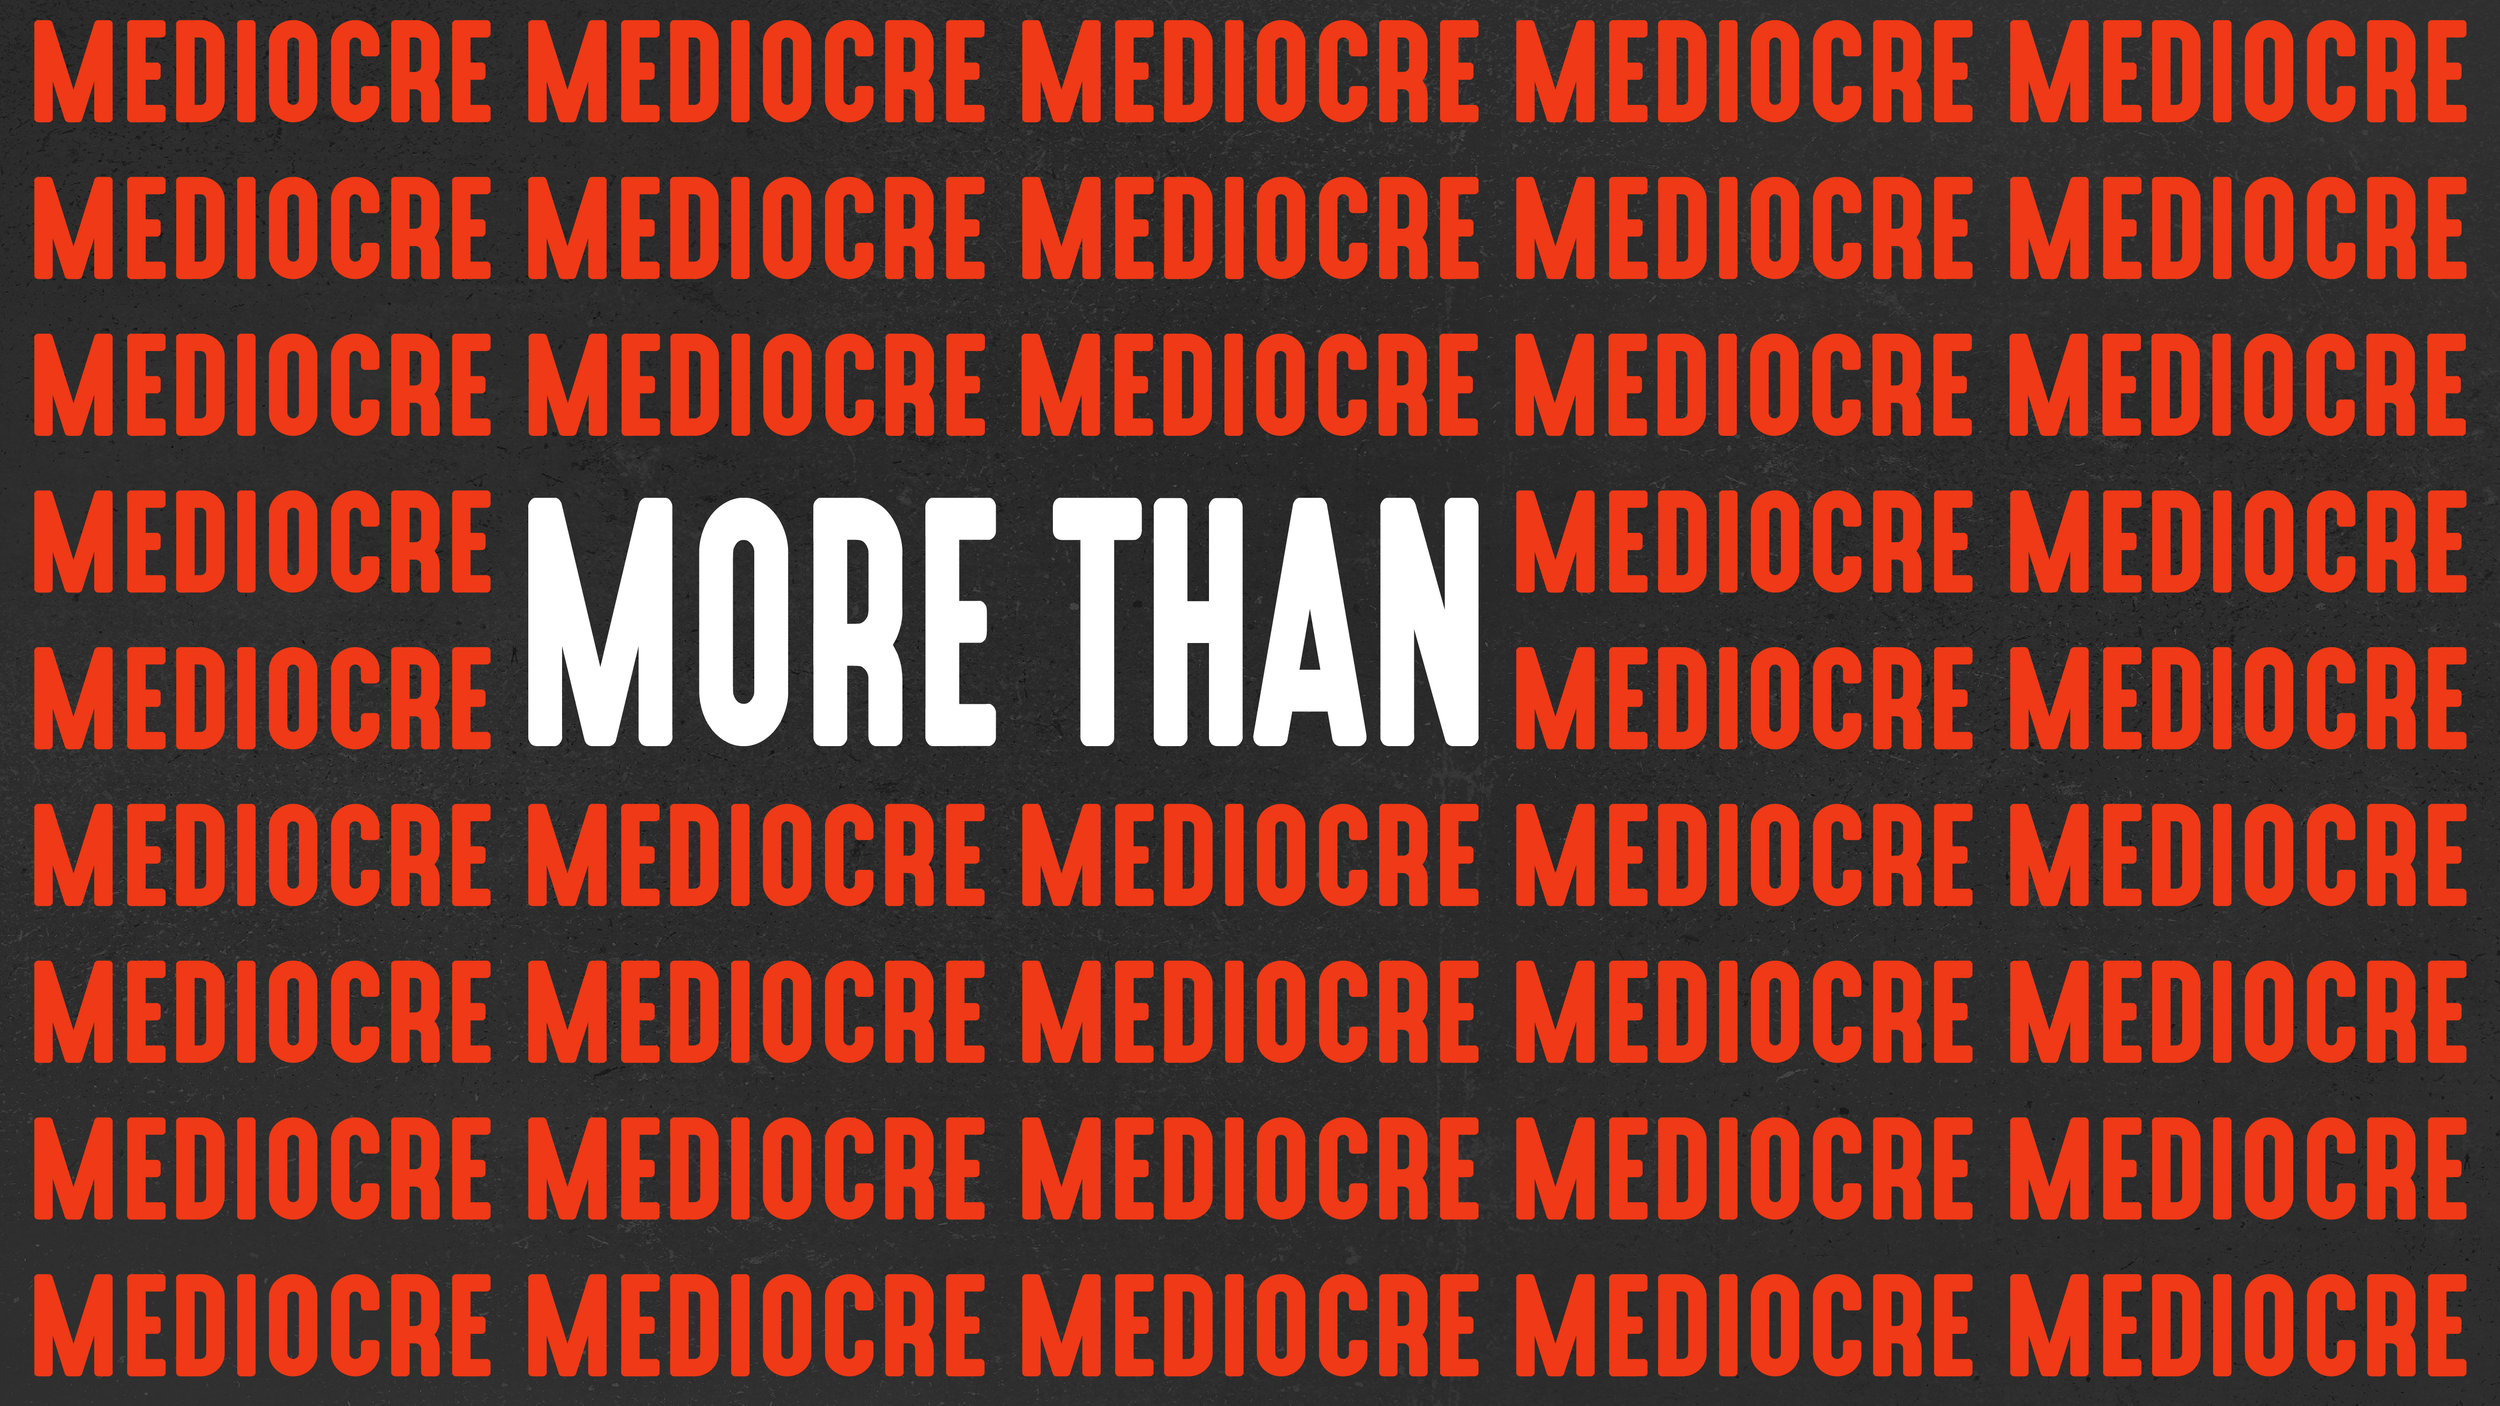 More Than Mediocre-02.jpg